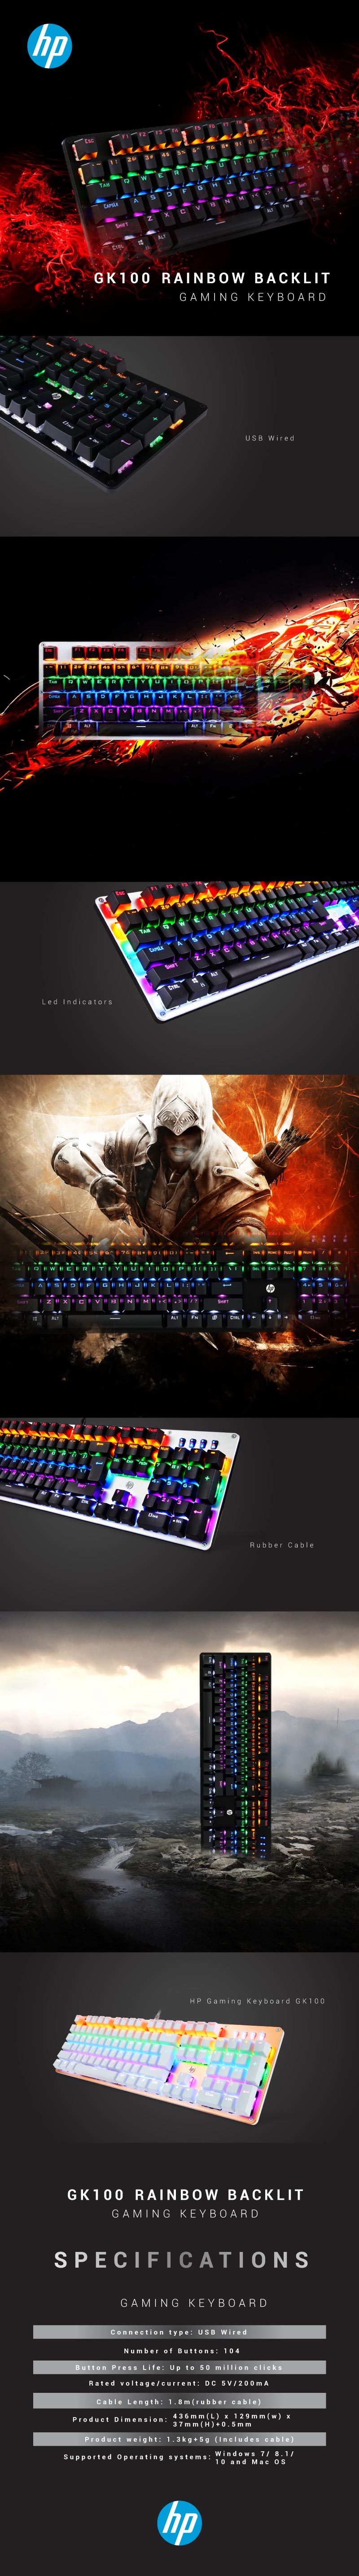 hp gk100 gaming keyboard